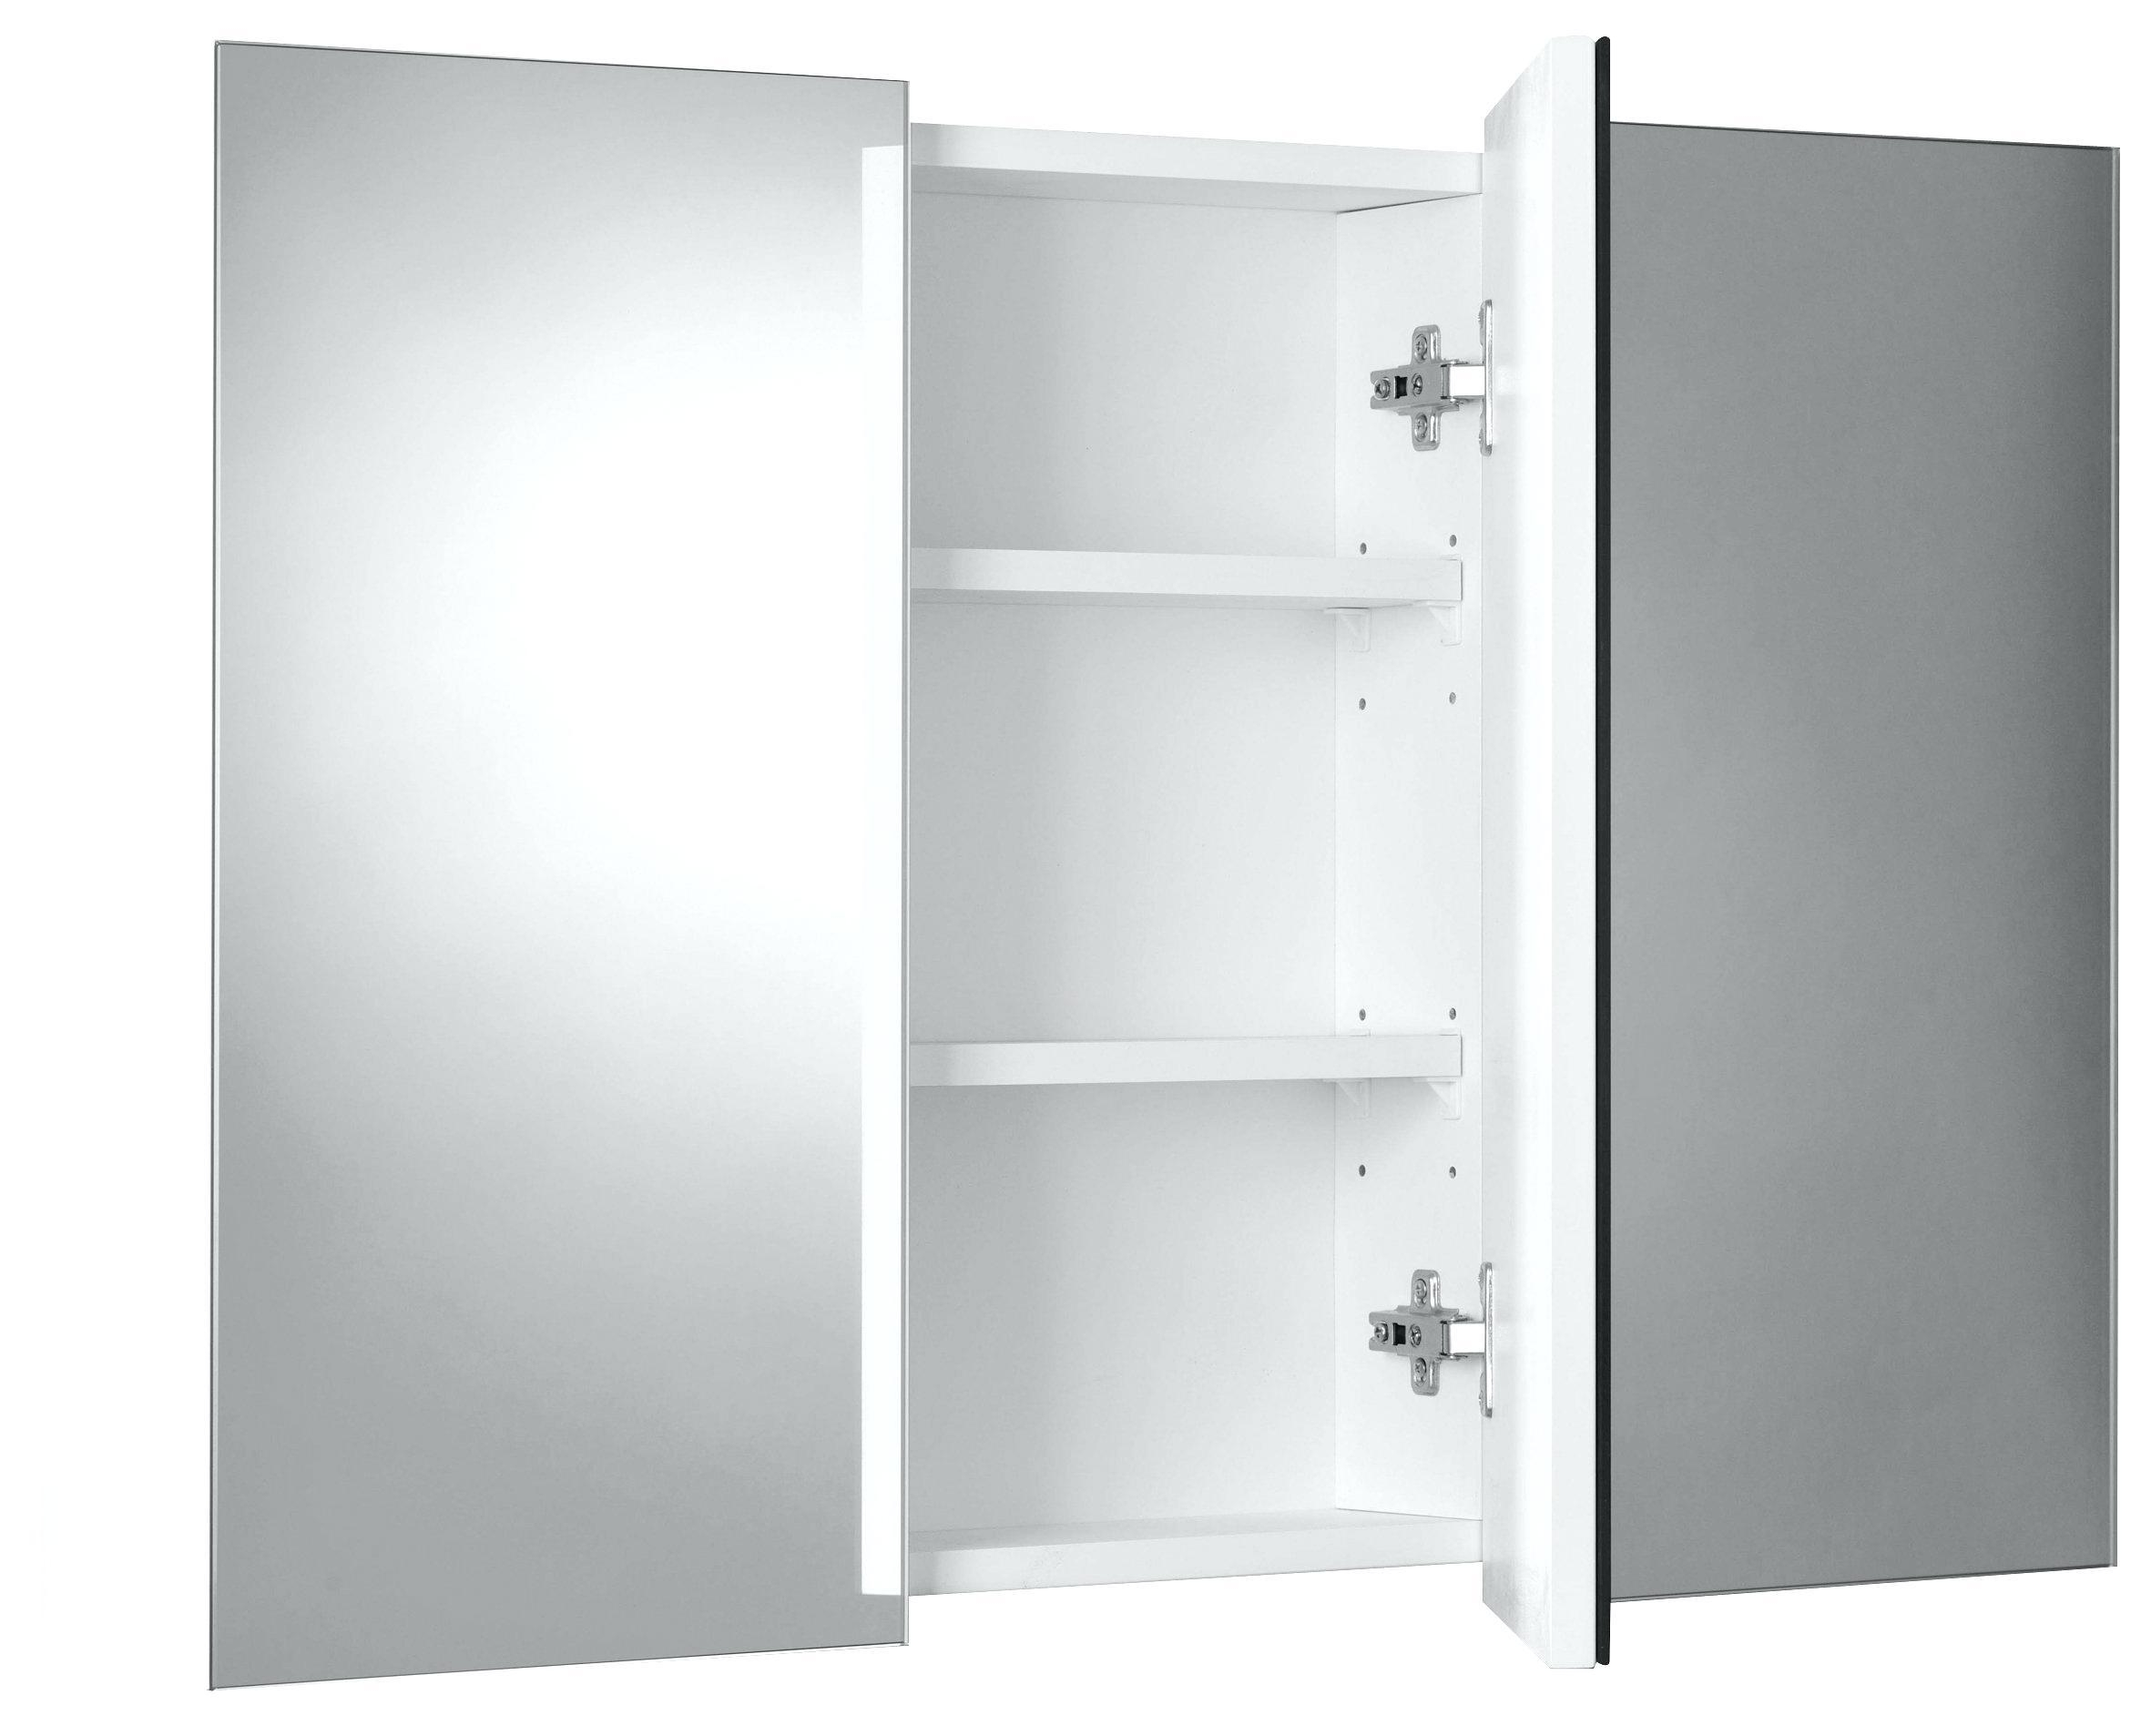 Mirror wall safe images home wall decoration ideas in wall gun safe mirror images home wall decoration ideas 20 inspirations safety mirrors for bathrooms amipublicfo Image collections